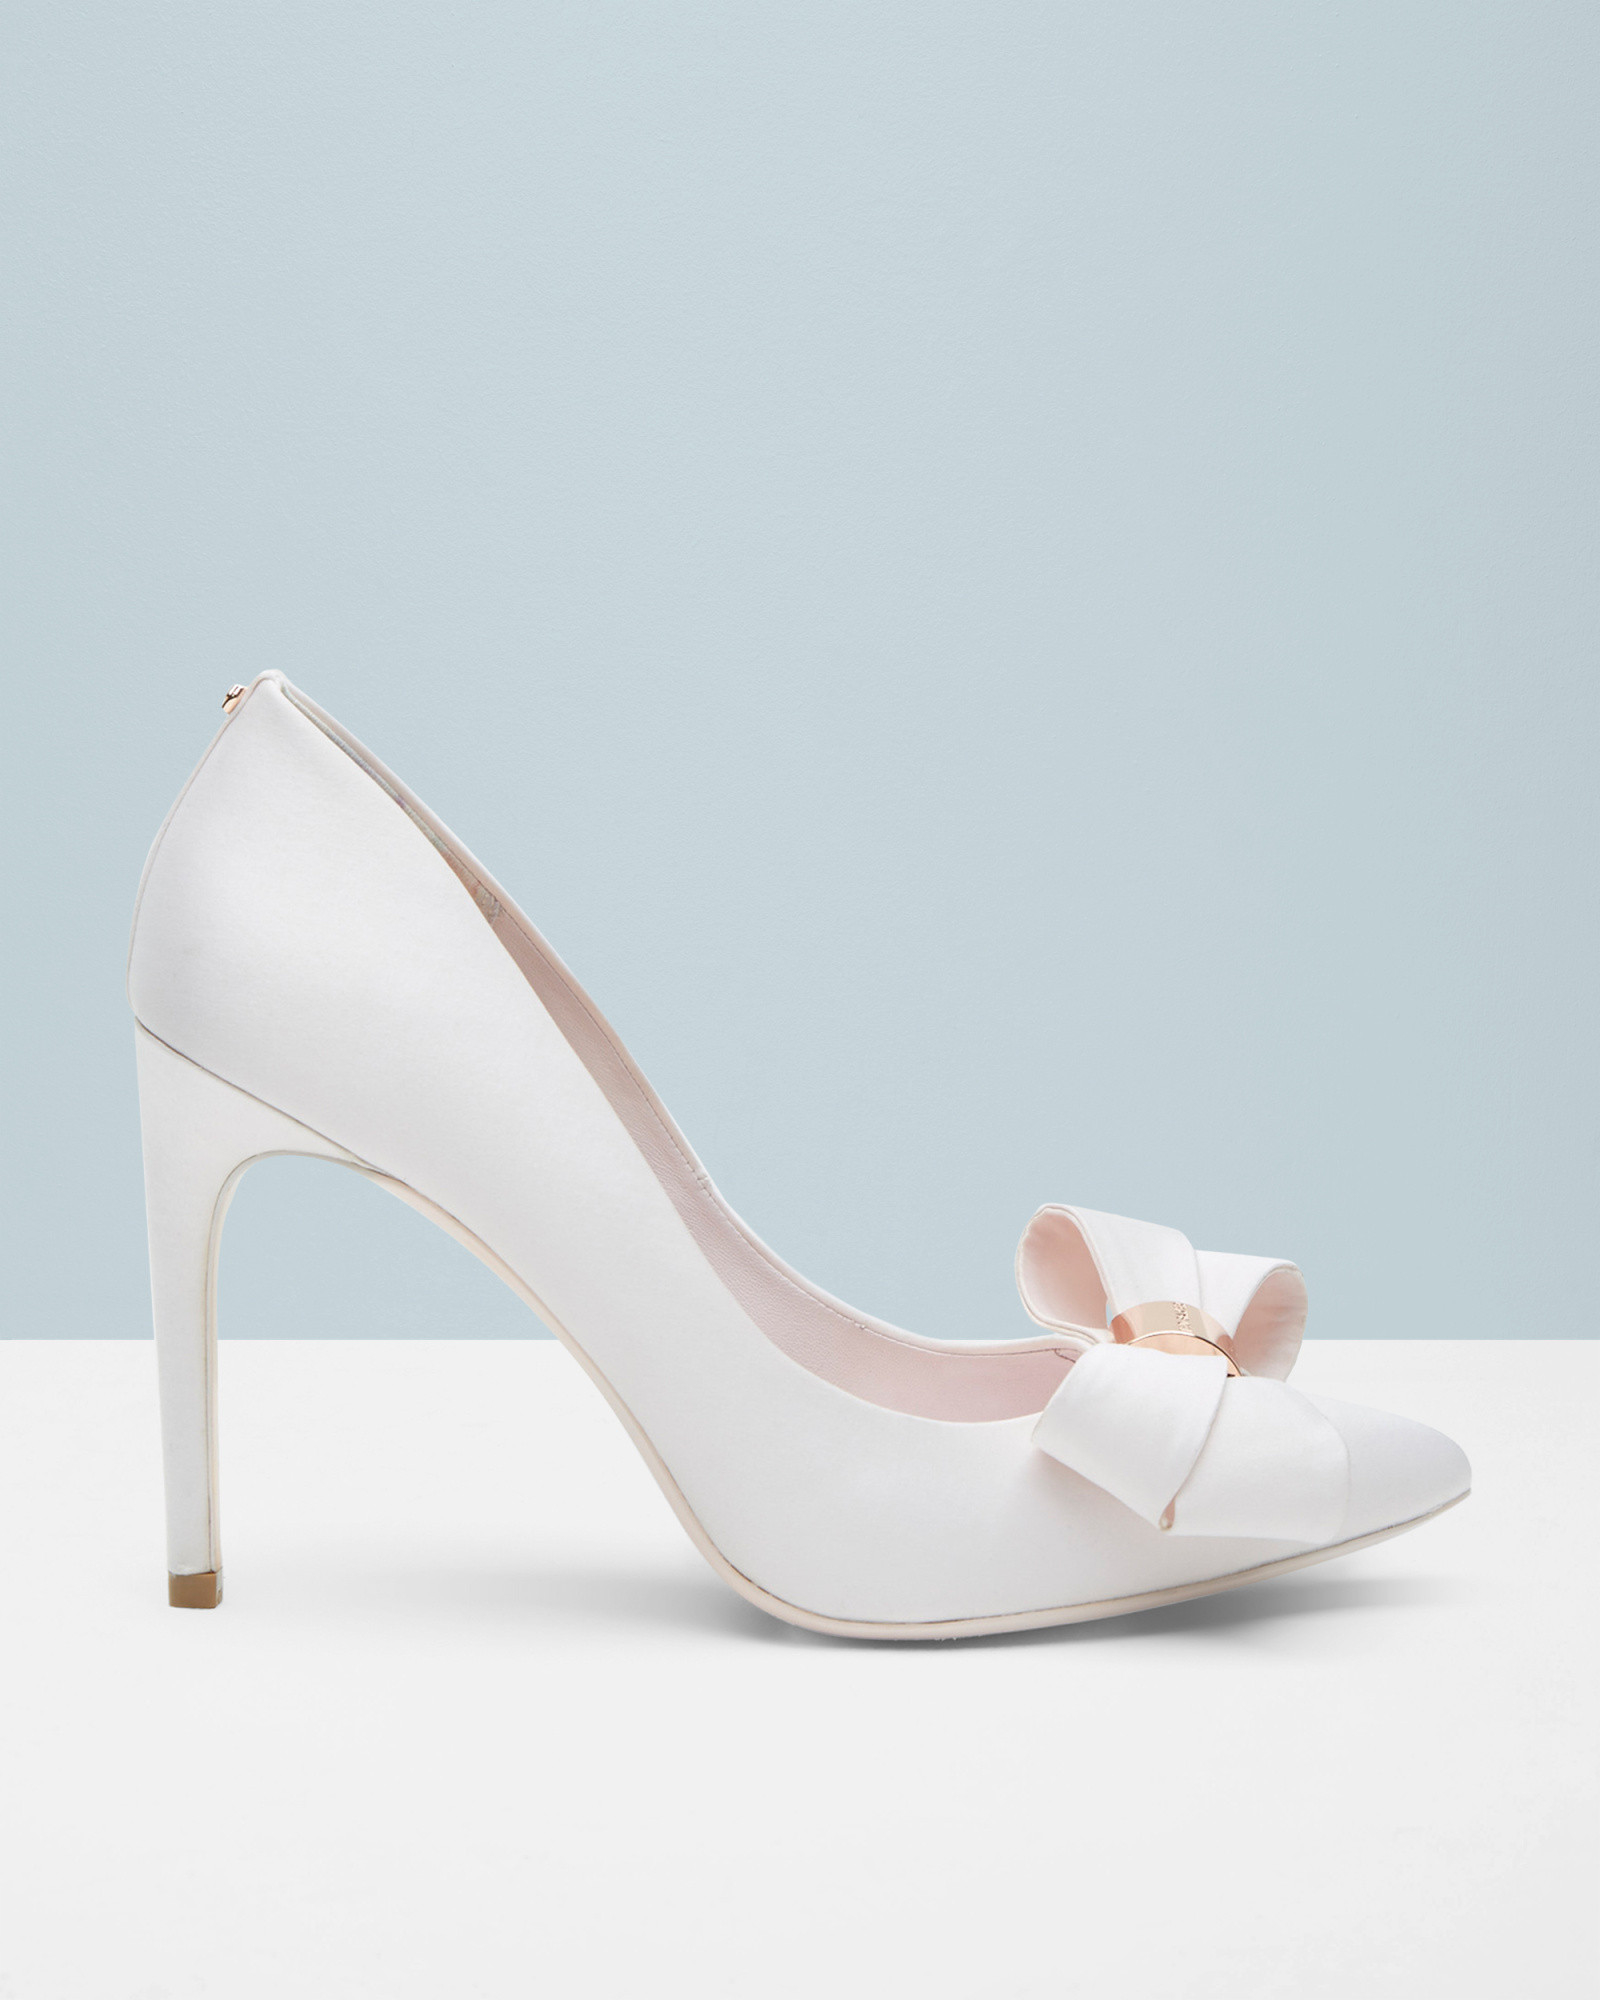 51db25efadd Ted Baker Statement Bow Court Shoes in White - Lyst